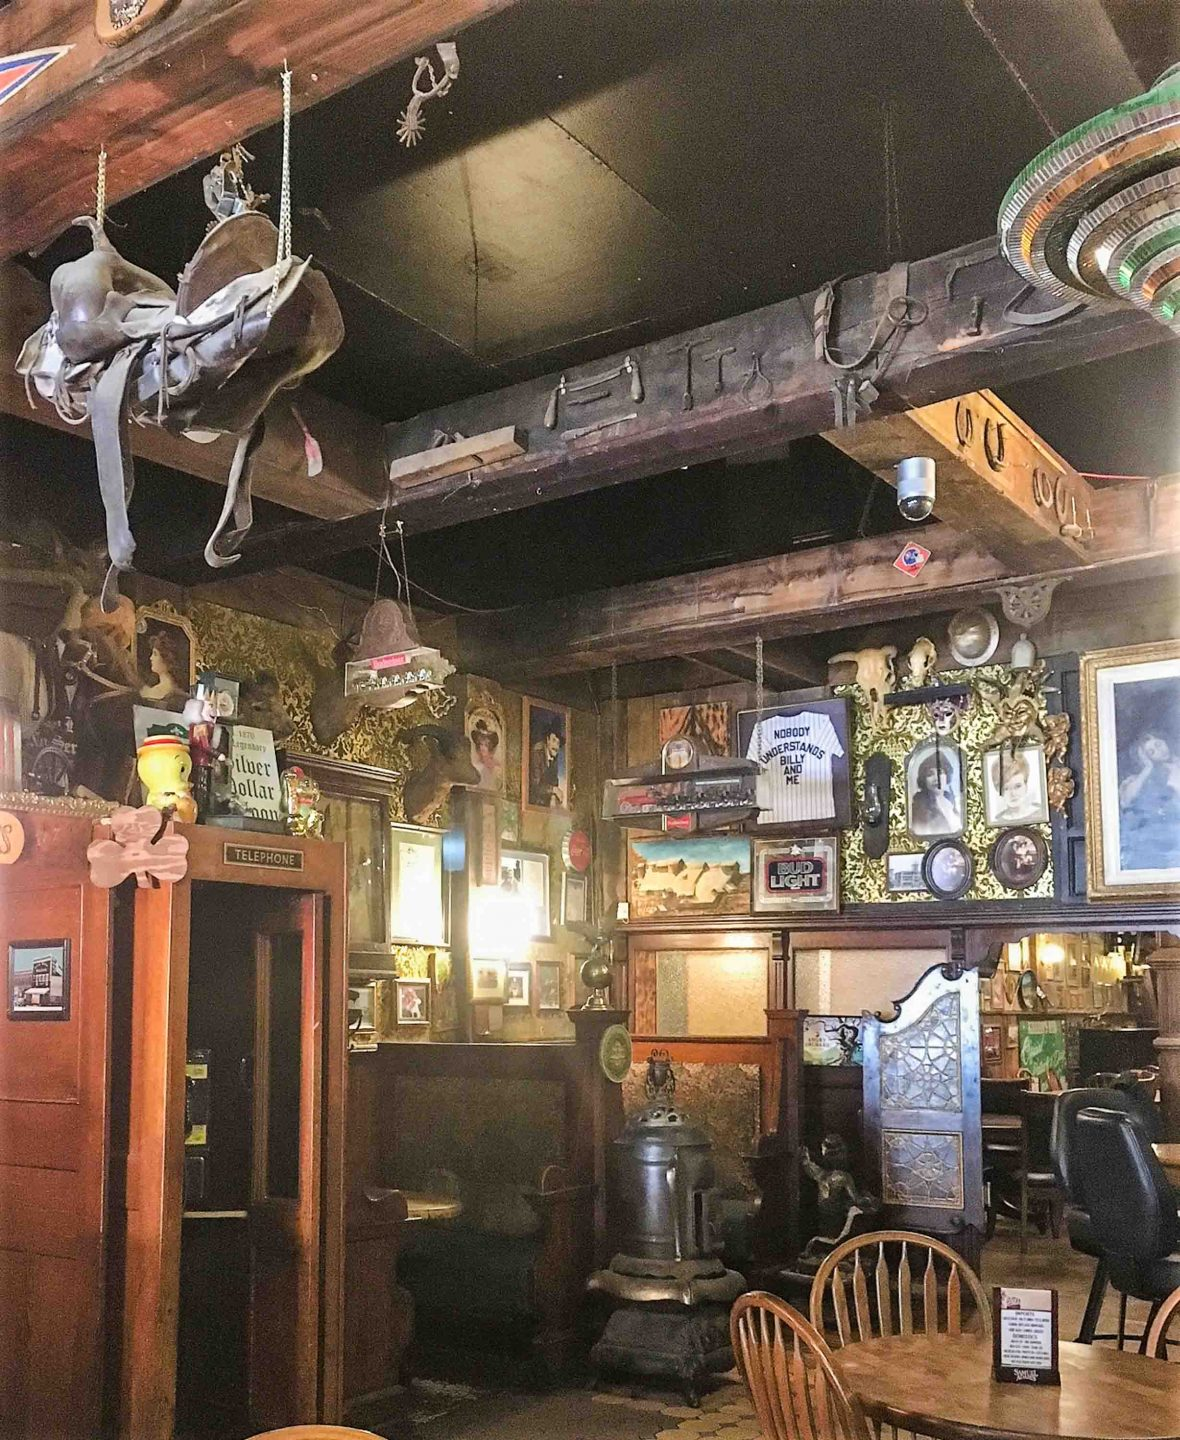 The interior of the Silver Dollar Saloon.